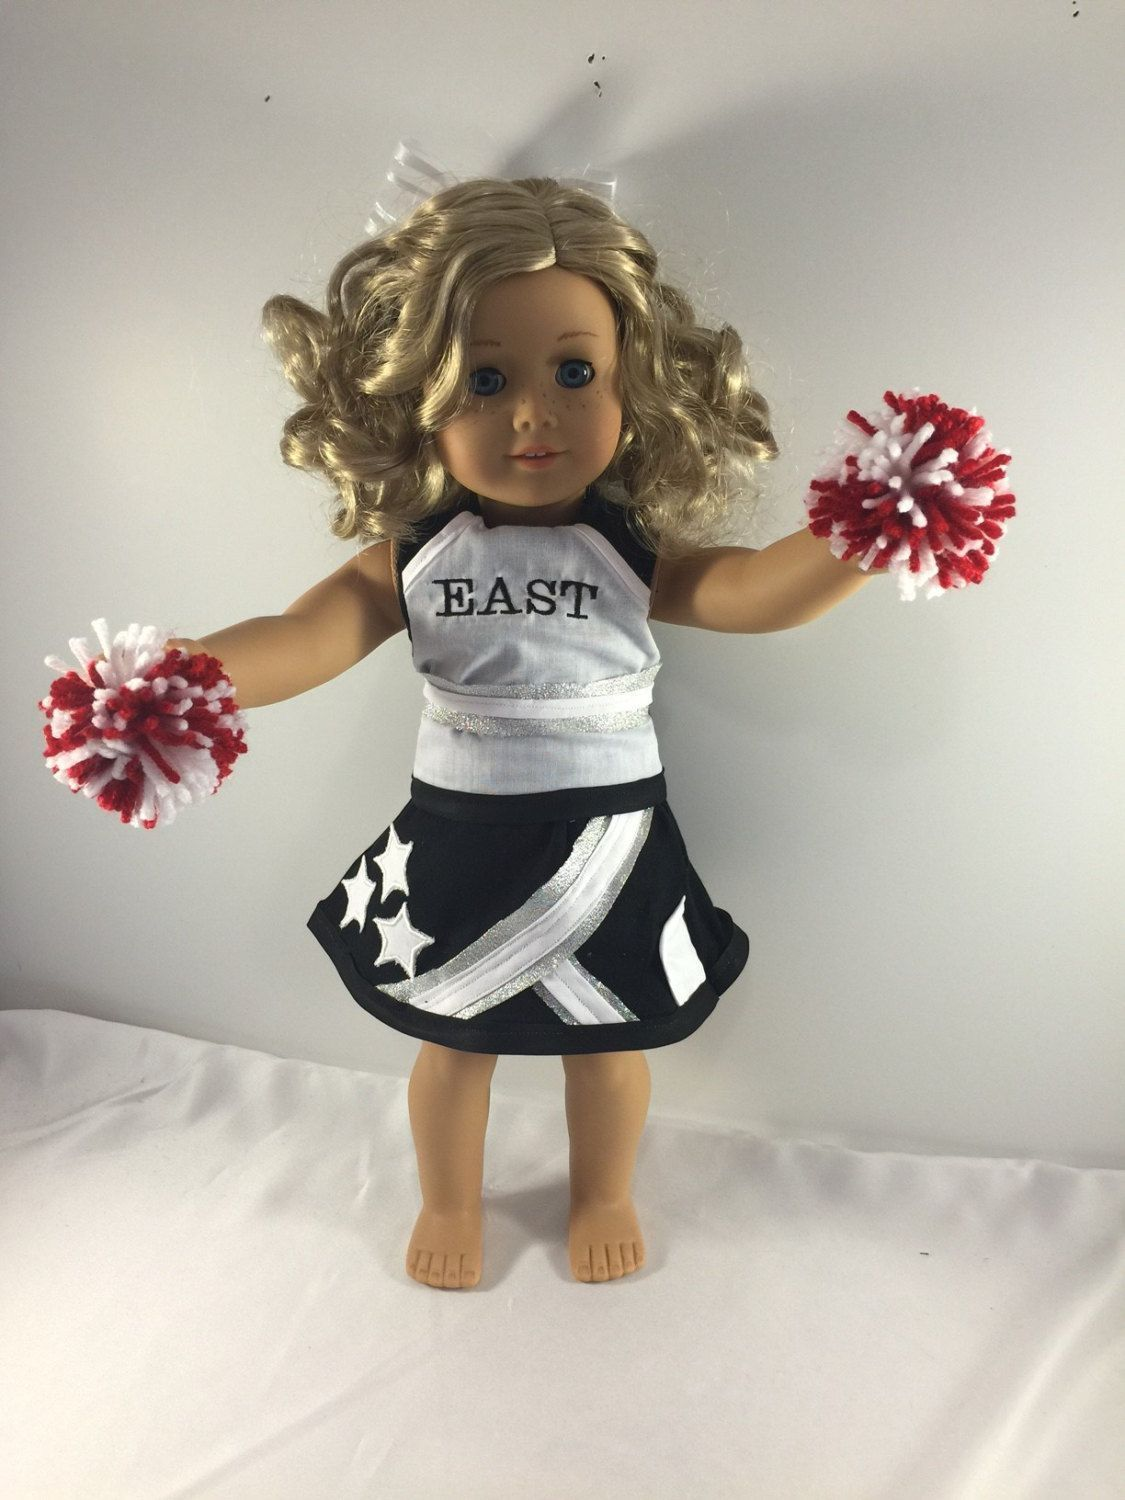 18 inch doll clothes-18 inch doll outfit-doll cheer outfit-AG doll clothes-cheerleader outfit-matching doll outfit-girl and doll by SweetpeasBowsNmore on Etsy #18inchcheerleaderclothes 18 inch doll clothes-18 inch doll outfit-doll cheer outfit-AG doll clothes-cheerleader outfit-matching doll outfit-girl and doll by SweetpeasBowsNmore on Etsy #18inchcheerleaderclothes 18 inch doll clothes-18 inch doll outfit-doll cheer outfit-AG doll clothes-cheerleader outfit-matching doll outfit-girl and doll b #18inchcheerleaderclothes